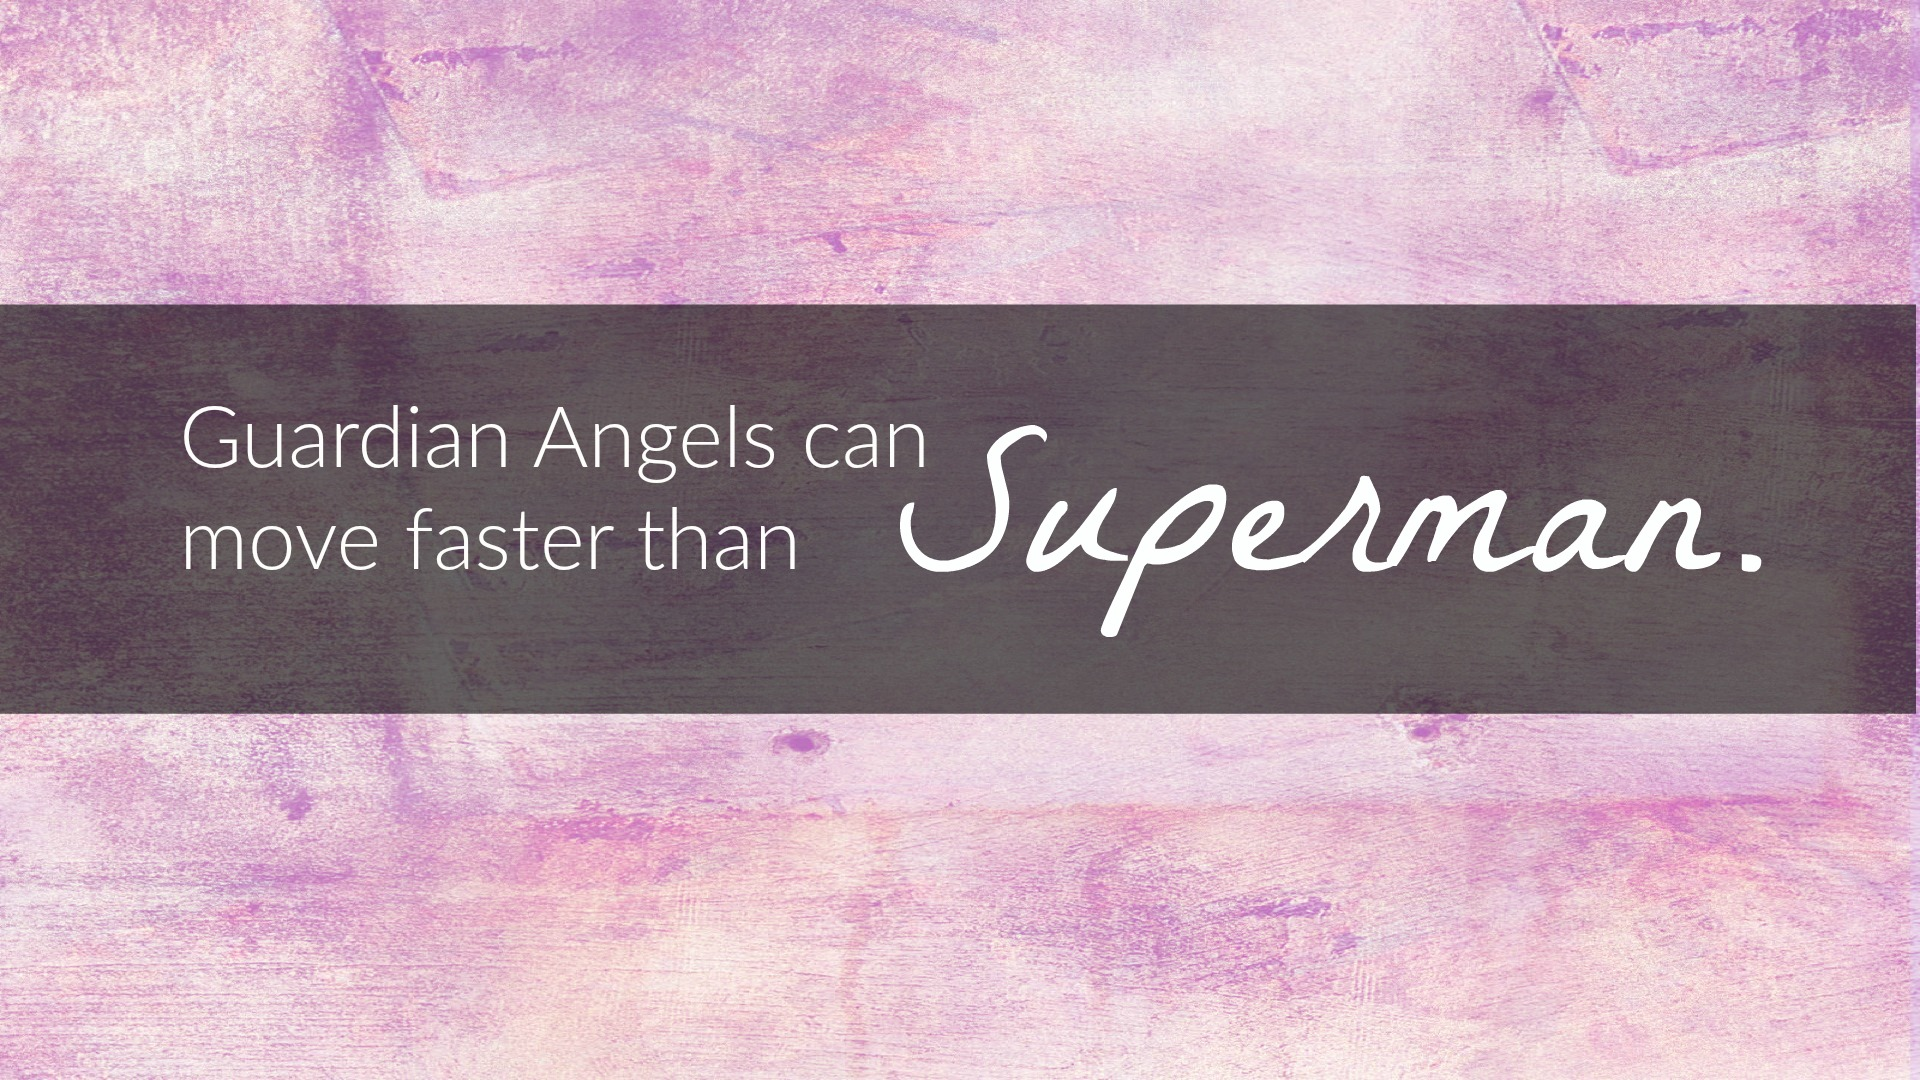 guardian angels can move faster than superman